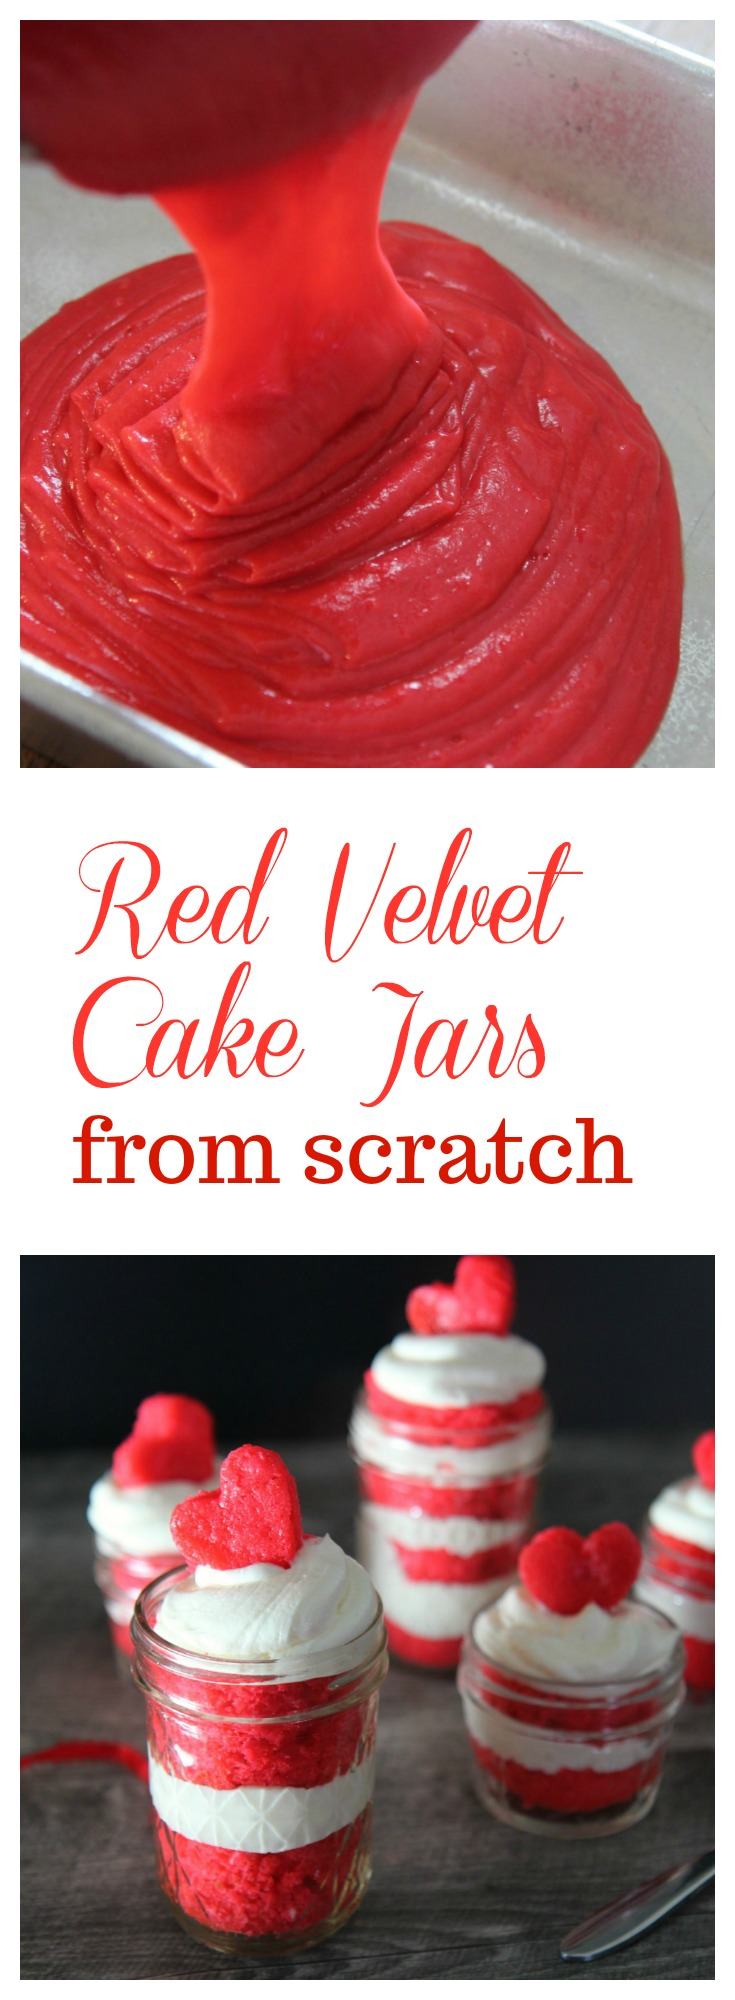 Learn how to make these Red Velvet Cake Jars from scratch at CookedbyJulie.com